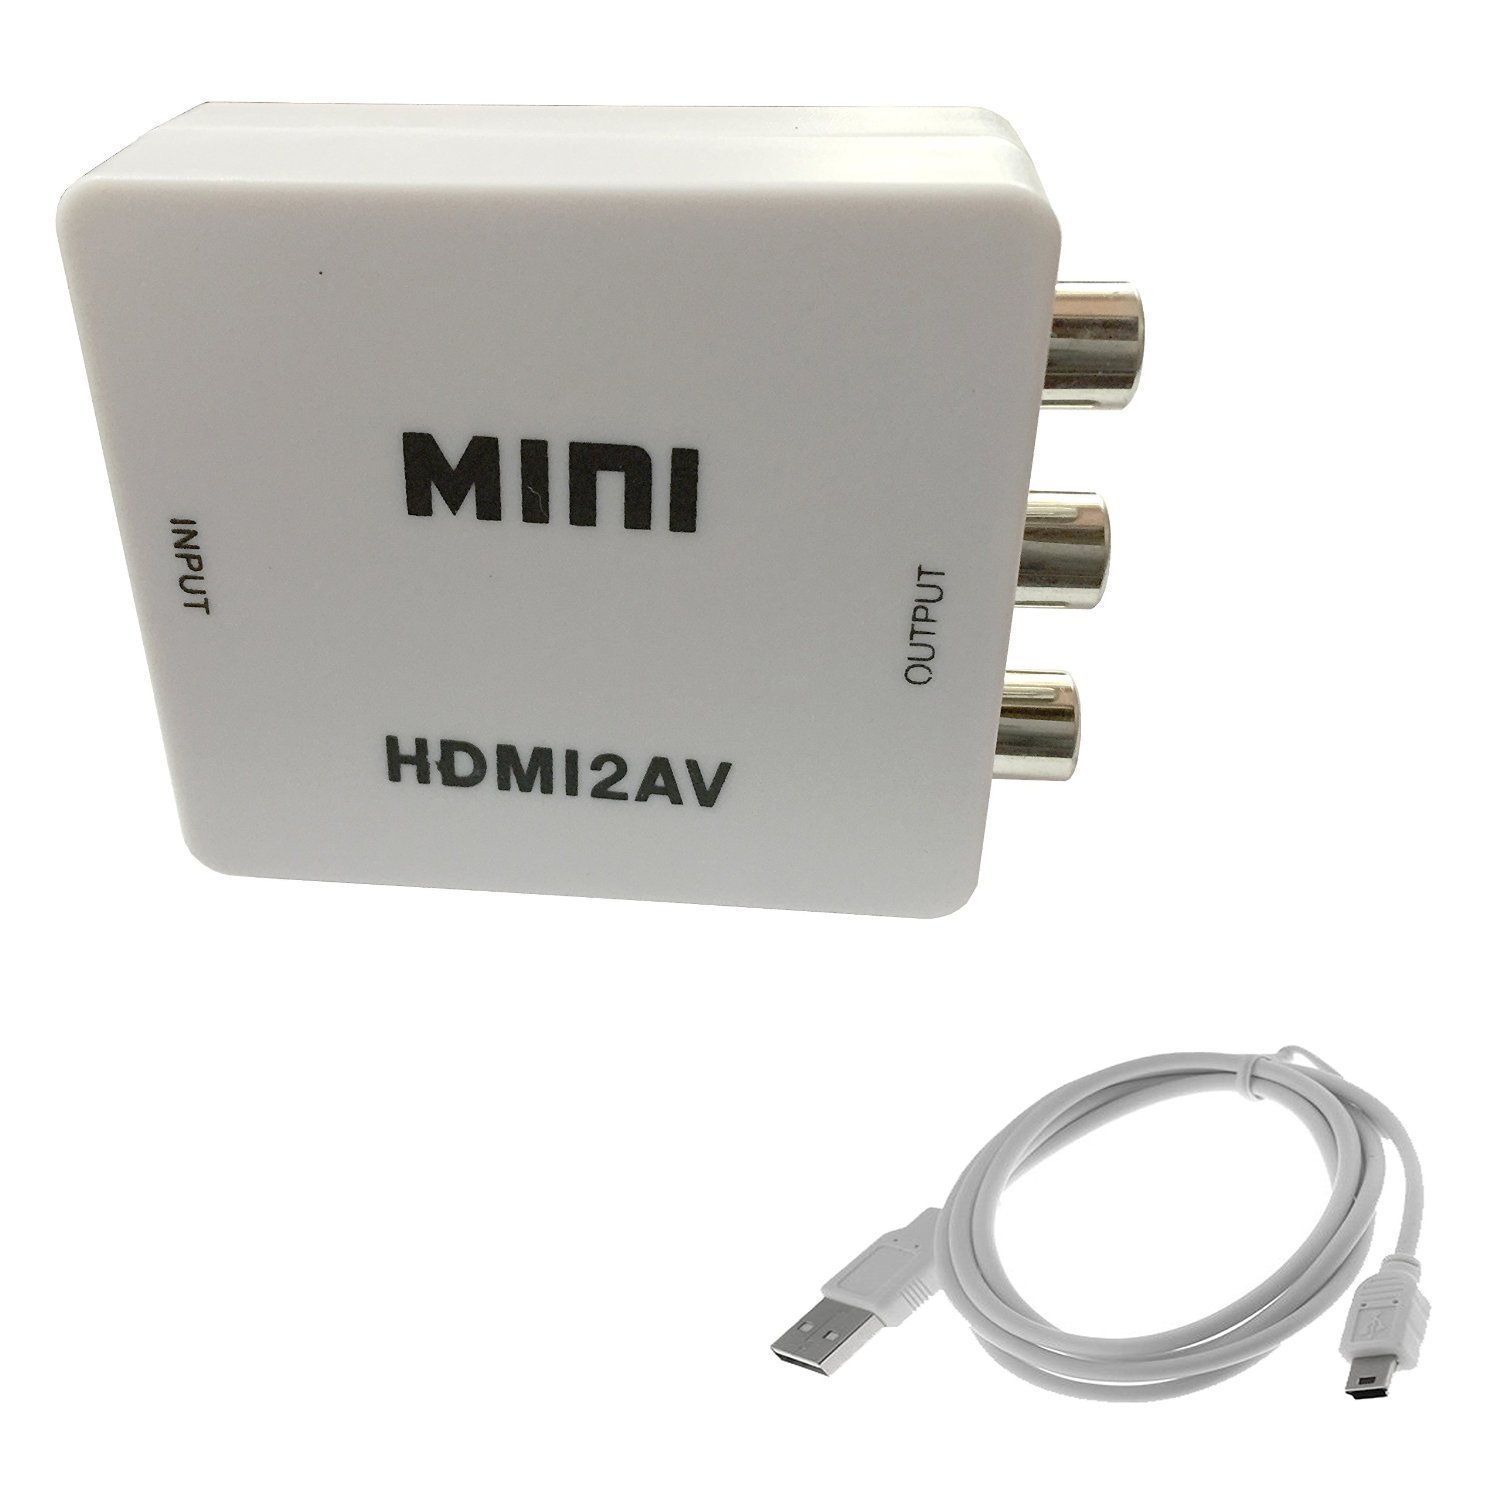 SNDIA Mini HDMI to AV Composite RCA CVbS Video + Audio Converter comes with 3 Chip set inside for TV PS3 VHS VCR DVD AY26